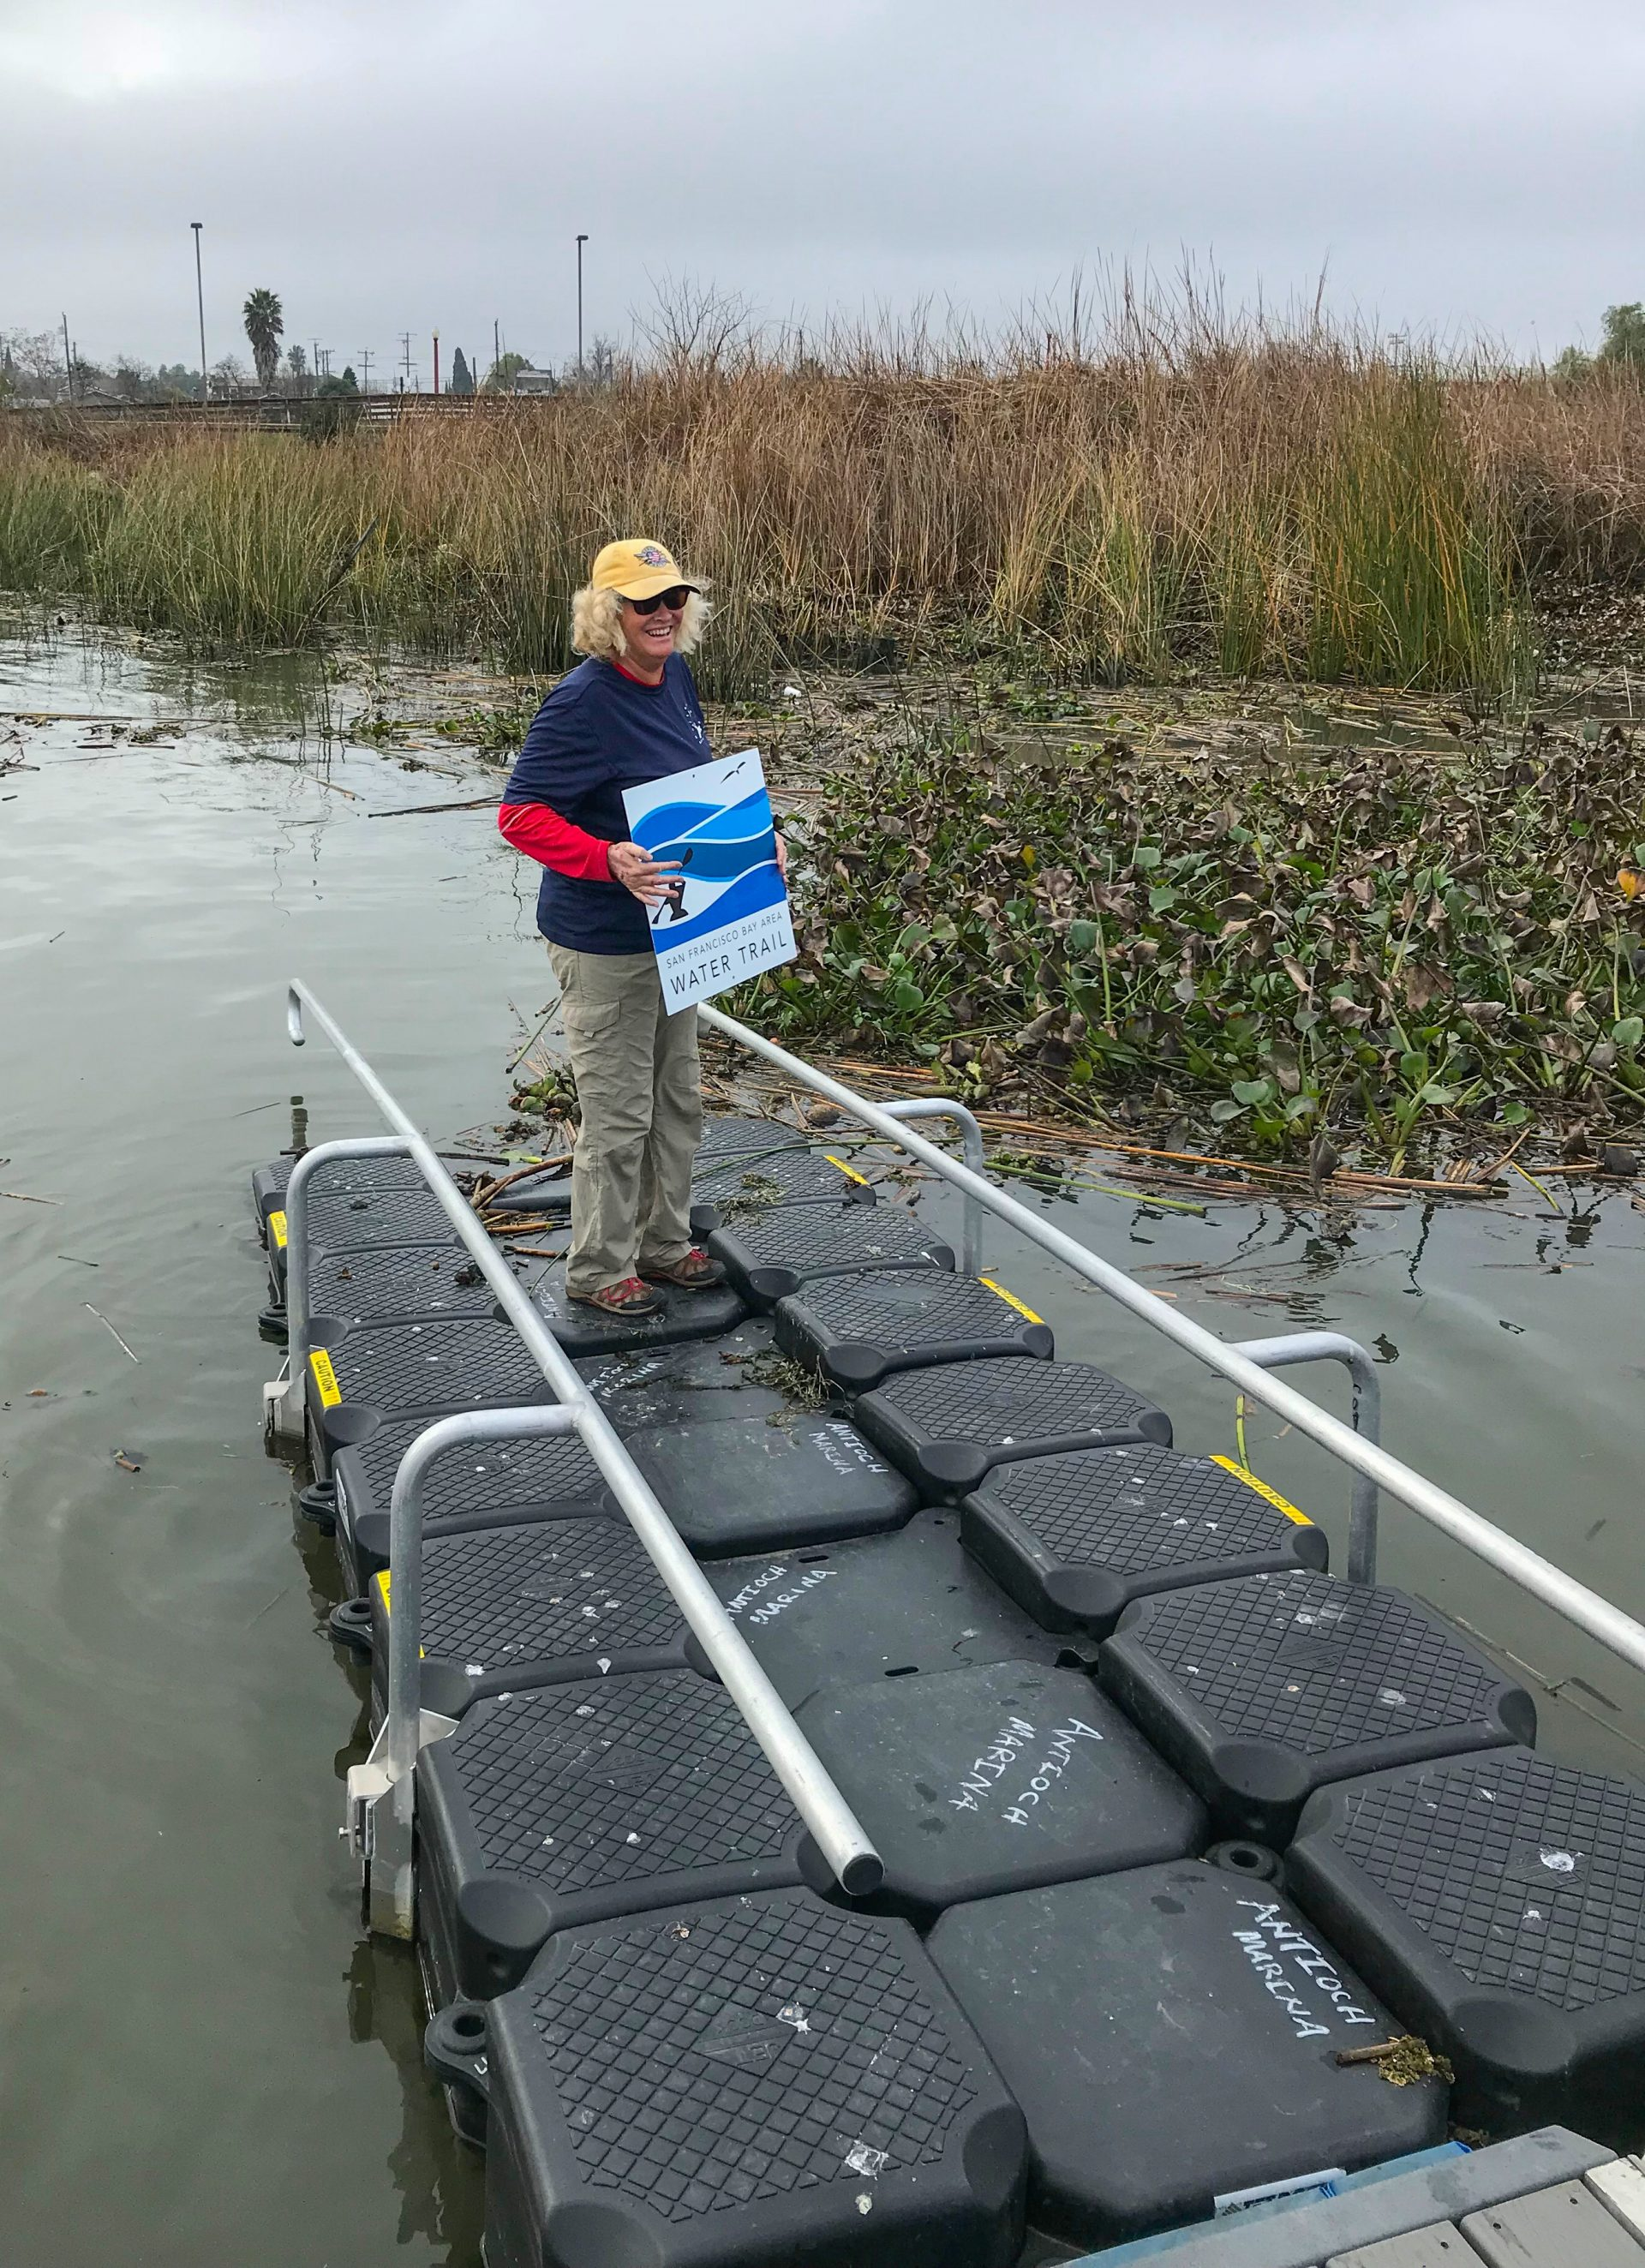 woman in blue standing on rubber dock holding Bay Water Trail sign